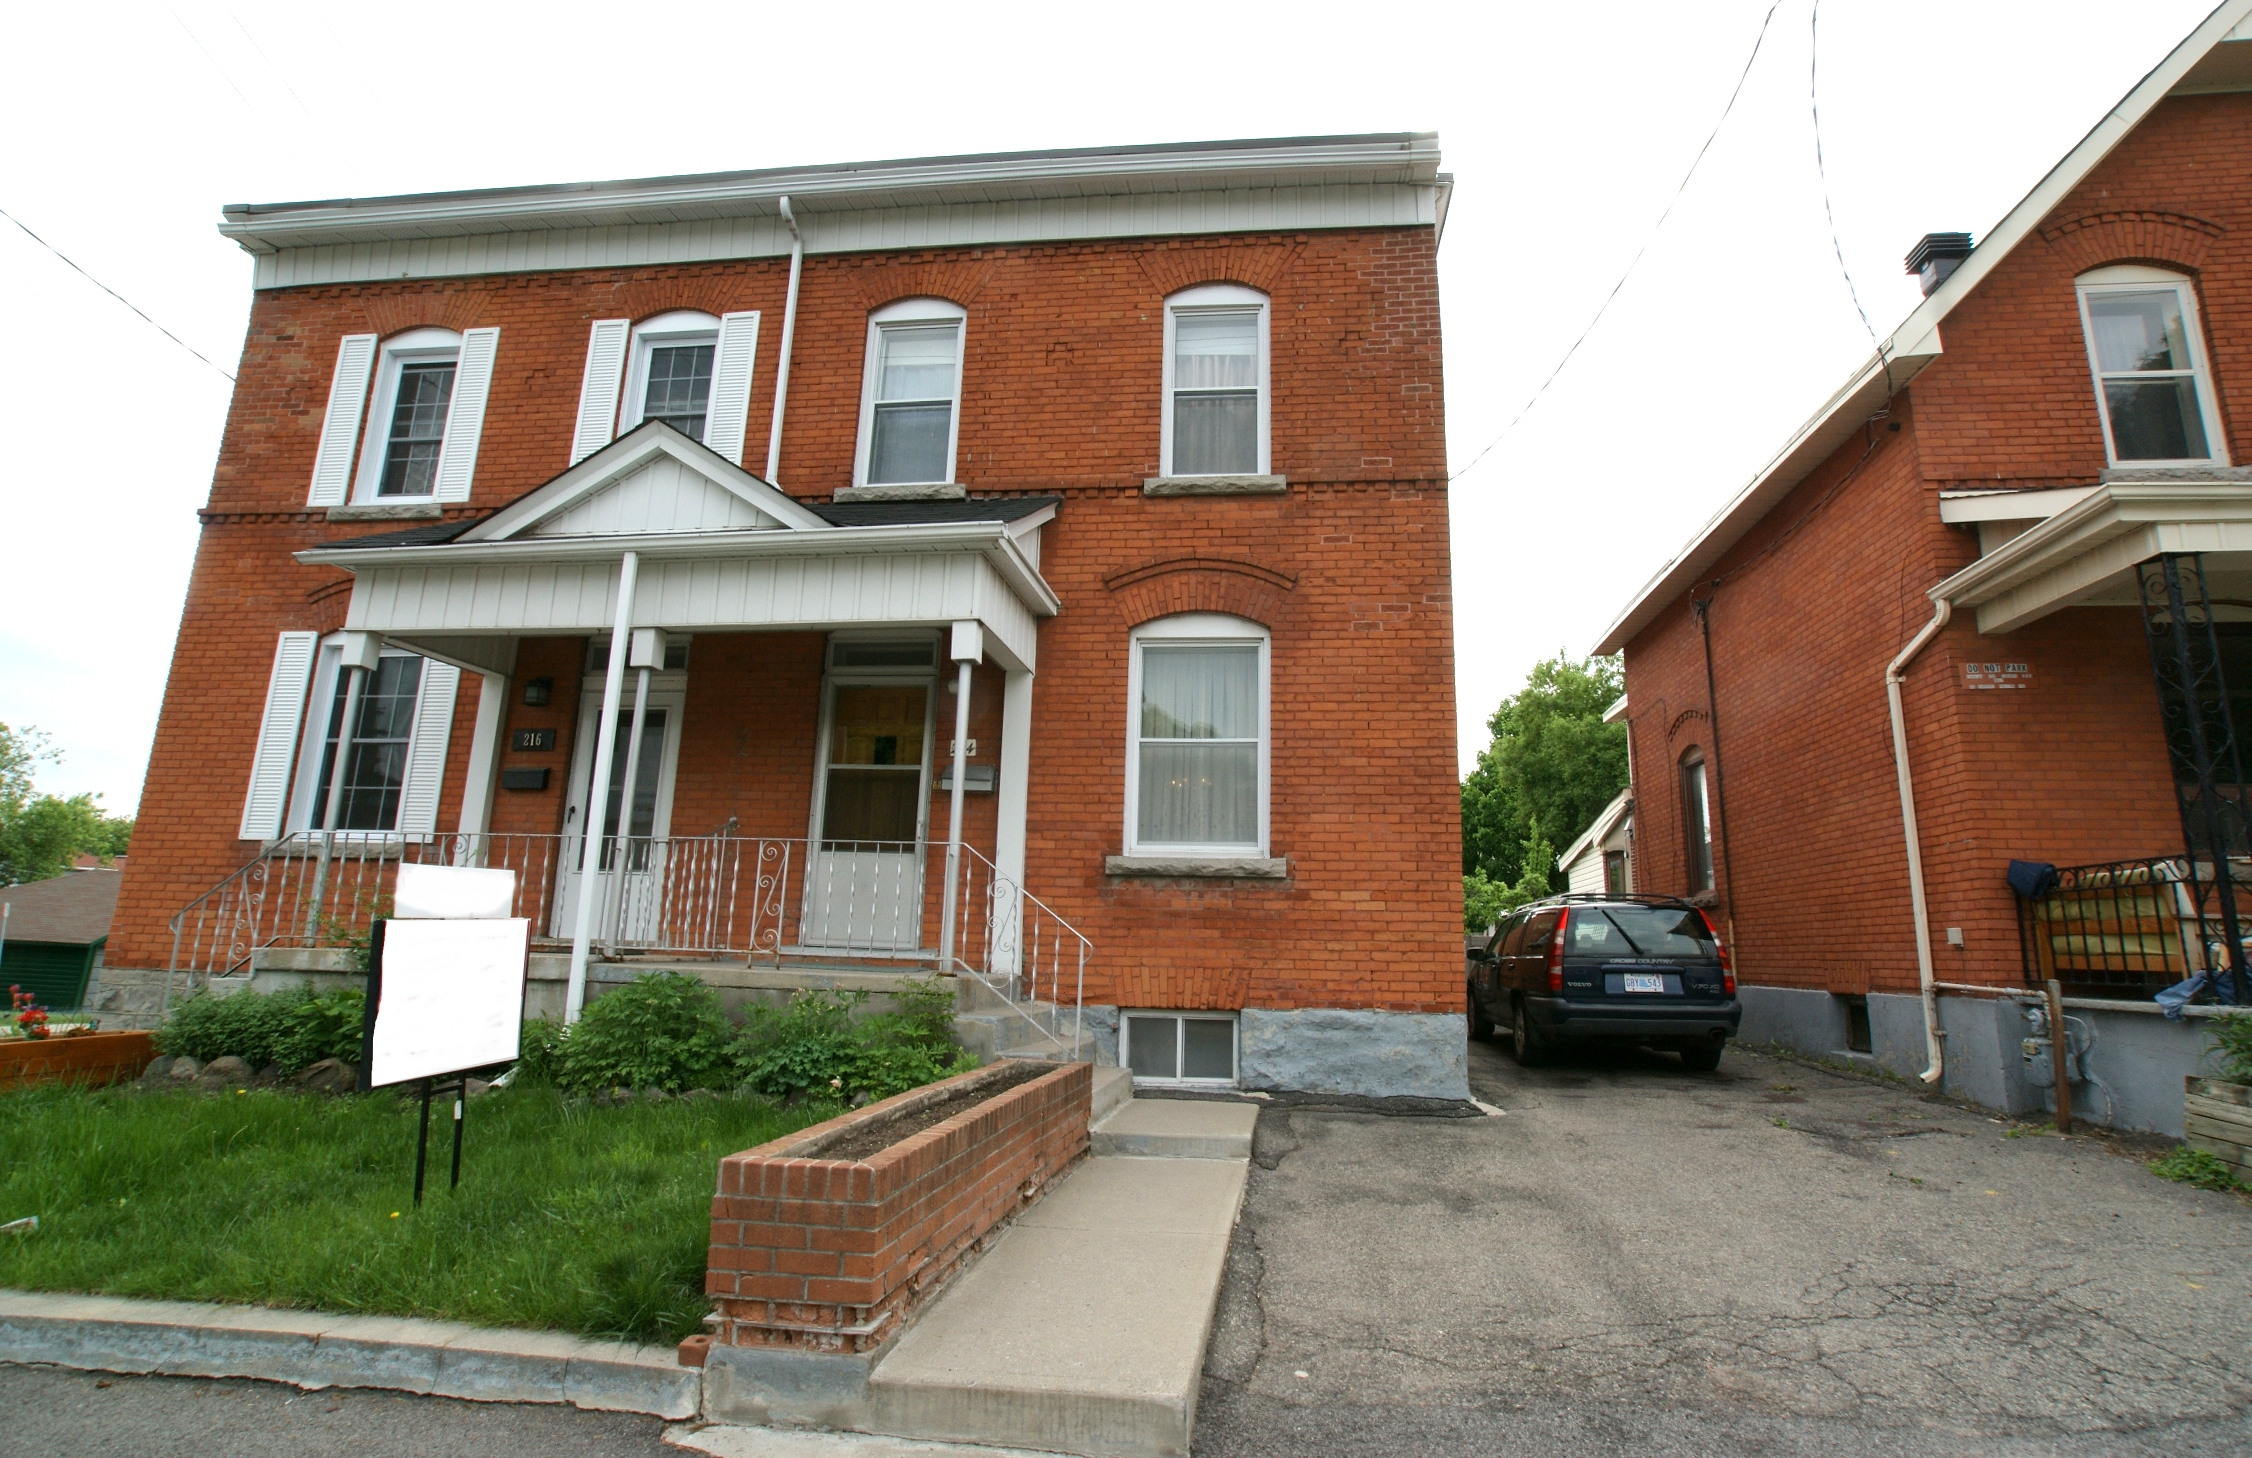 214 Cambridge Street N – Sold June 2018